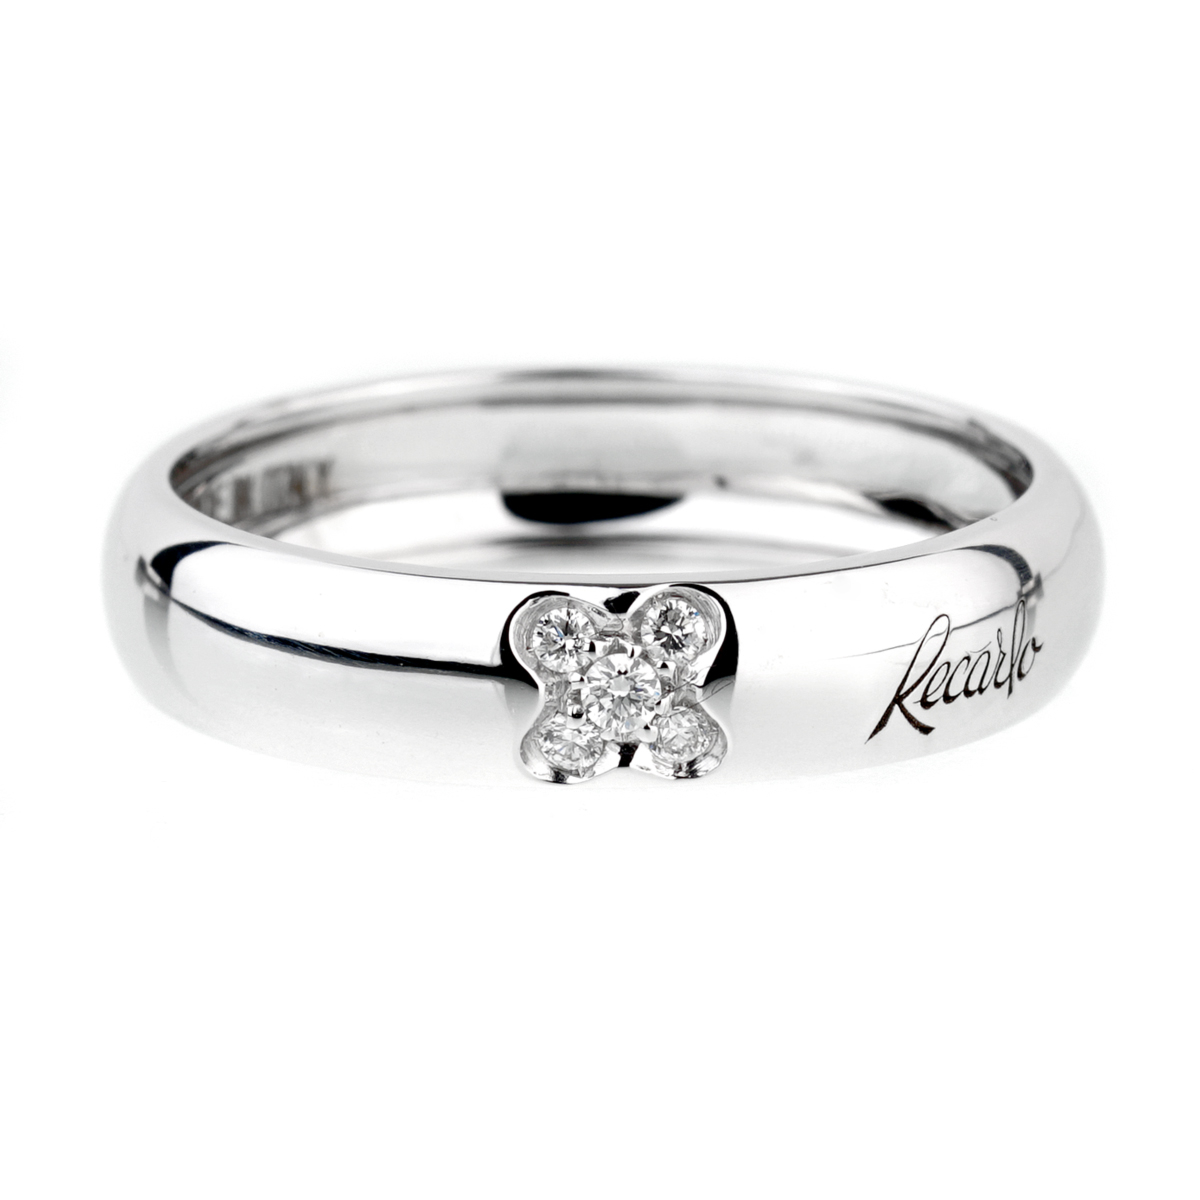 Recarlo Clover Diamond White Gold Ring - Recarlo Jewelry